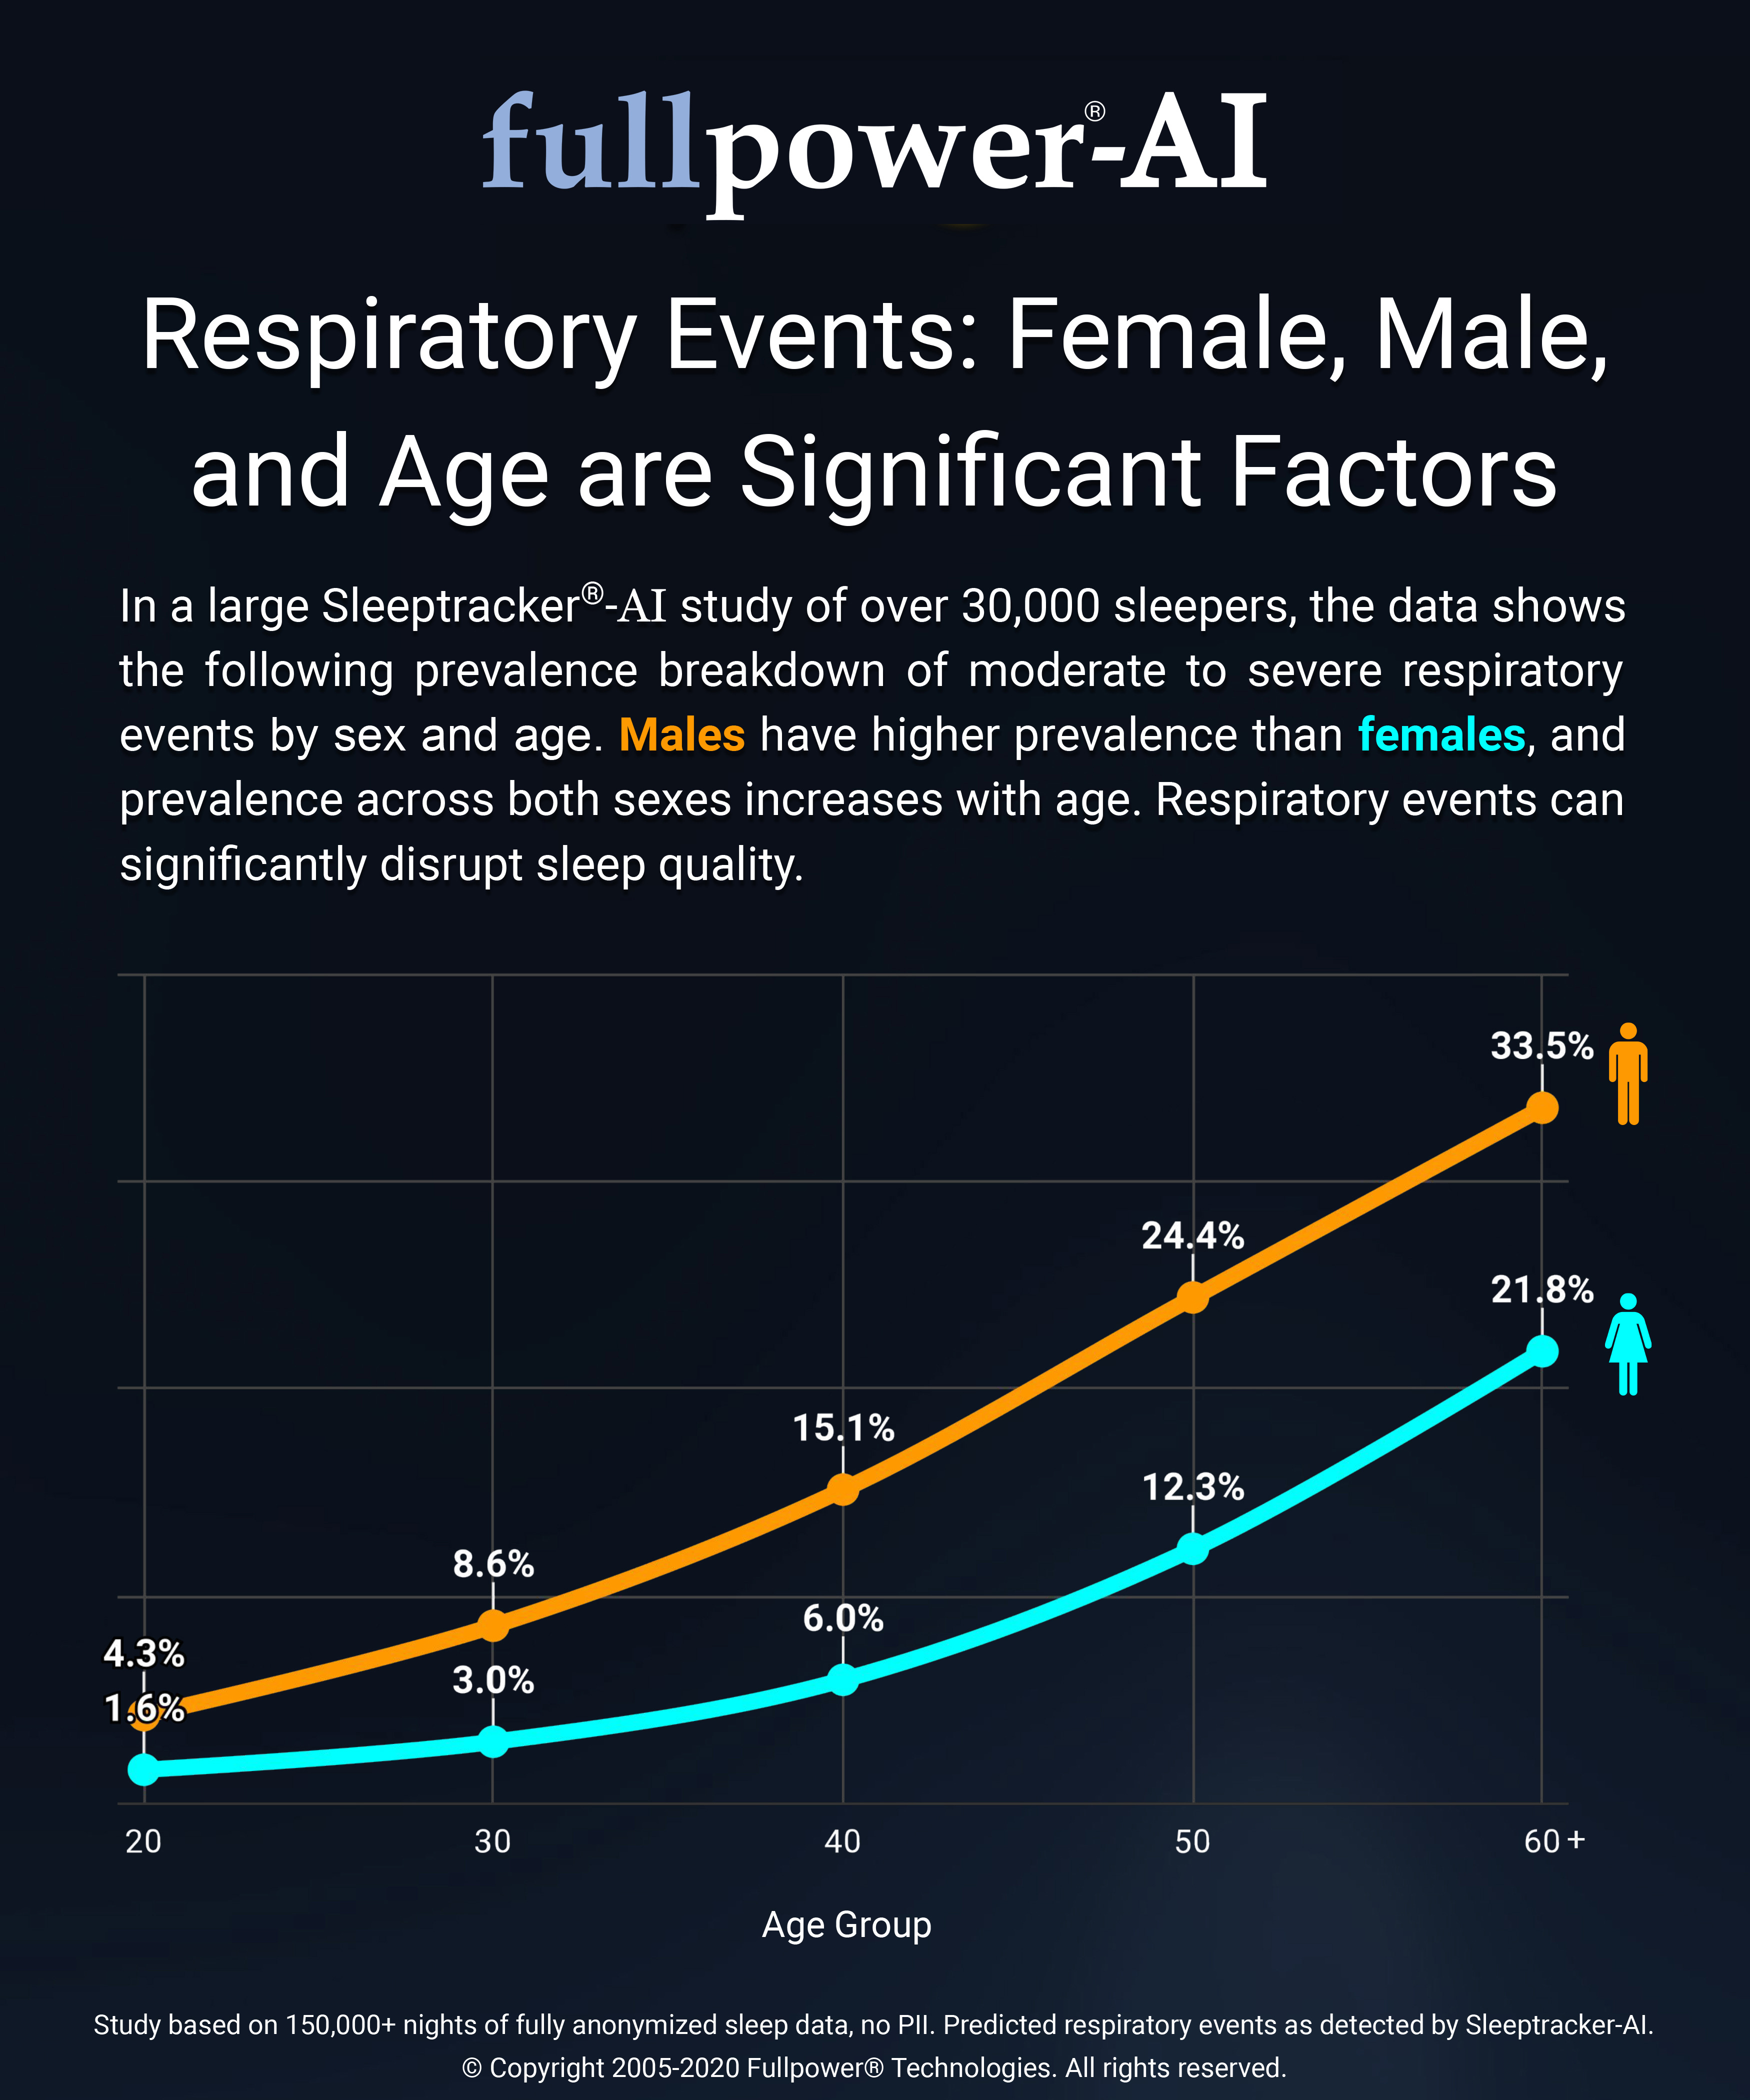 Respiratory Events: Female, Male, and Age are significant factors